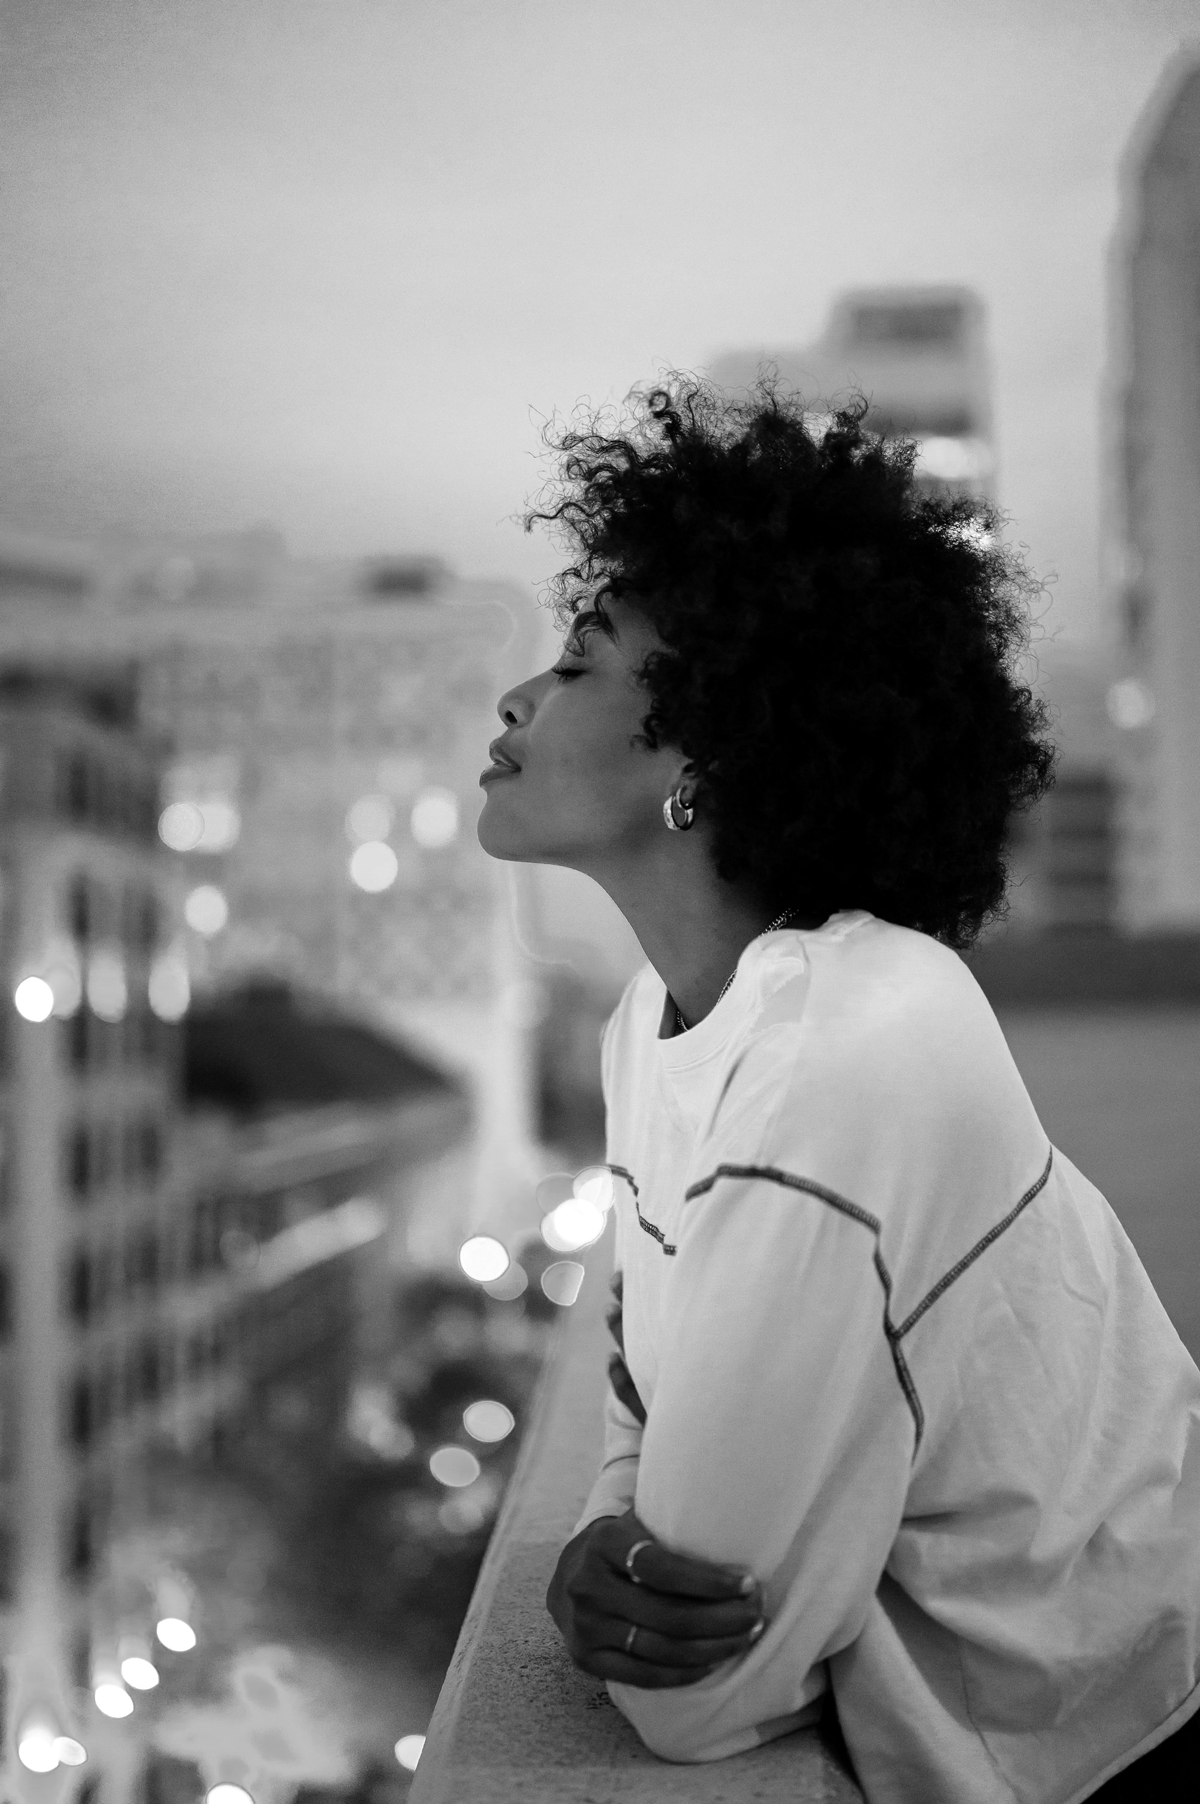 woman of color looking peacefully at the city lights